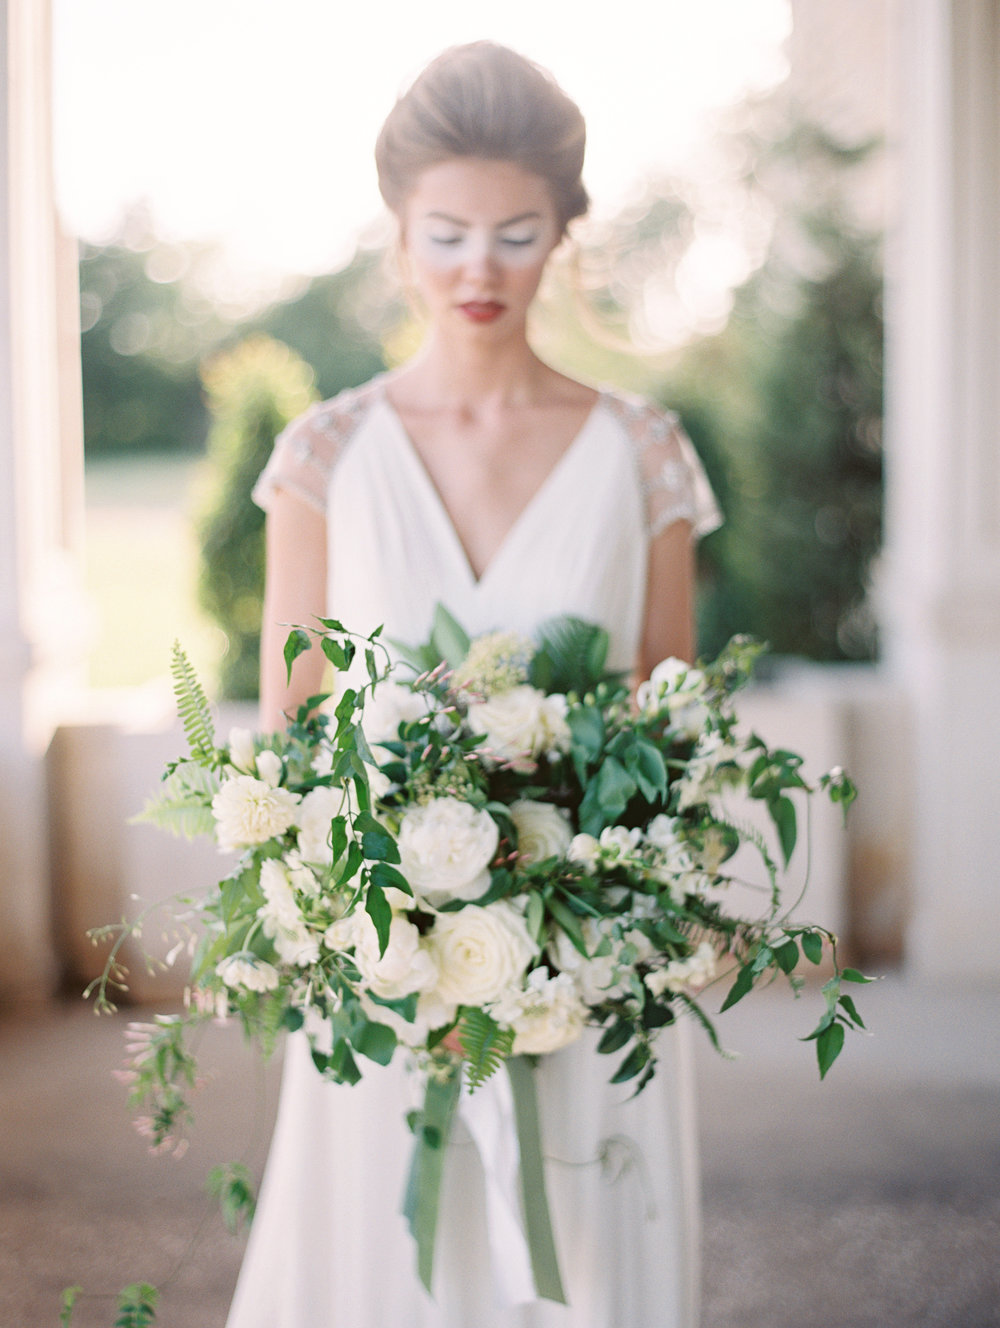 Fine art green and white wedding inspiration by Columbus, Ohio wedding planner Meggie Francisco. Photo by Charla Storey.